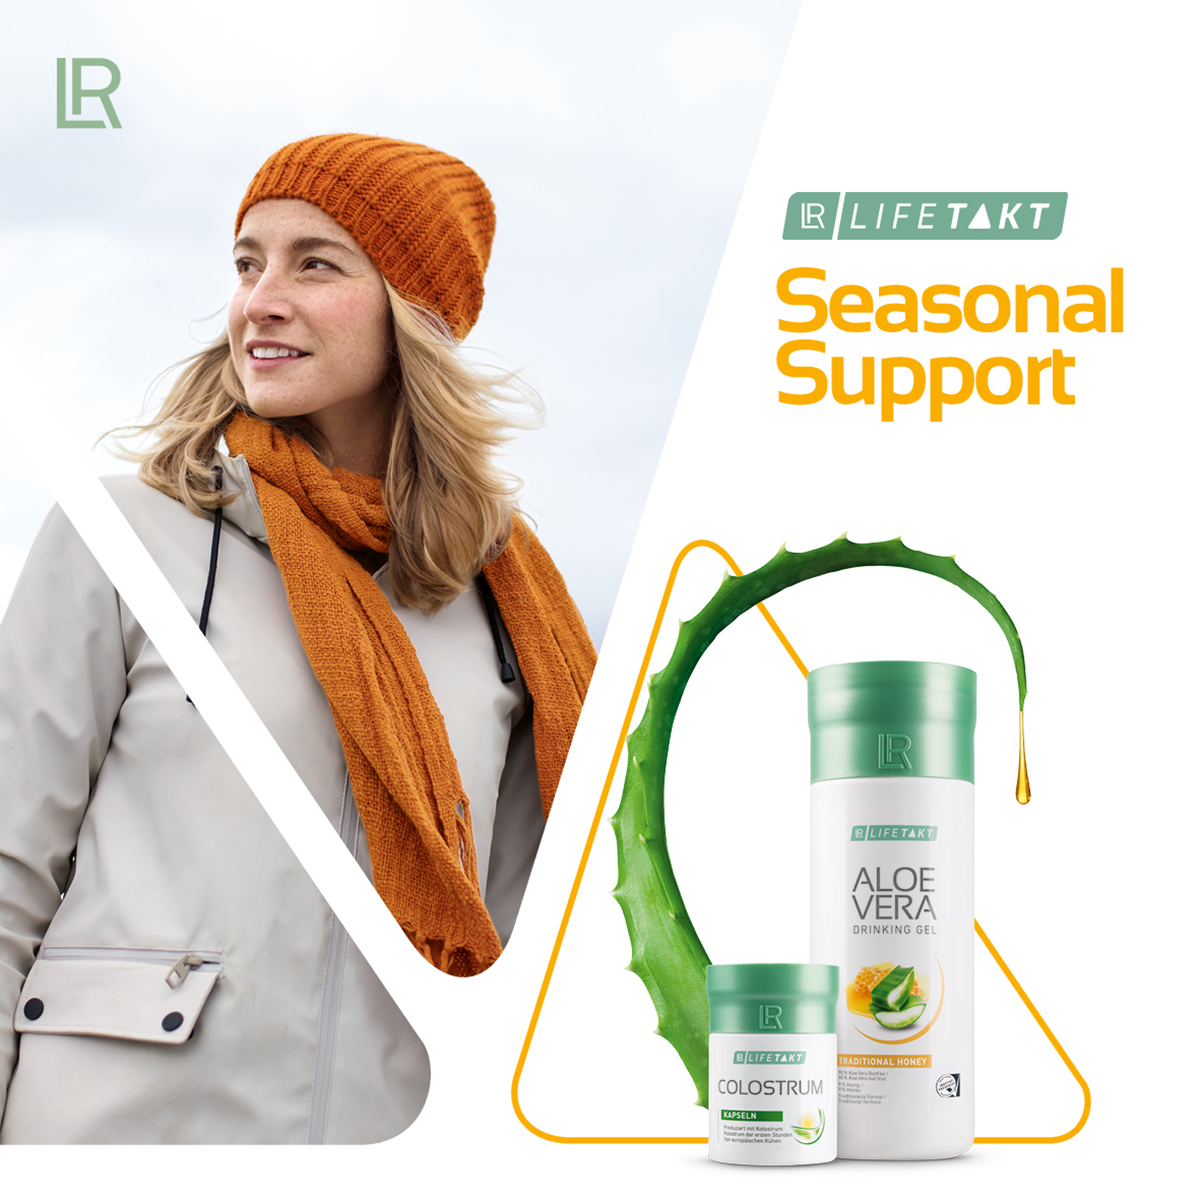 LR LIFETAKT Bild Seasonal Support